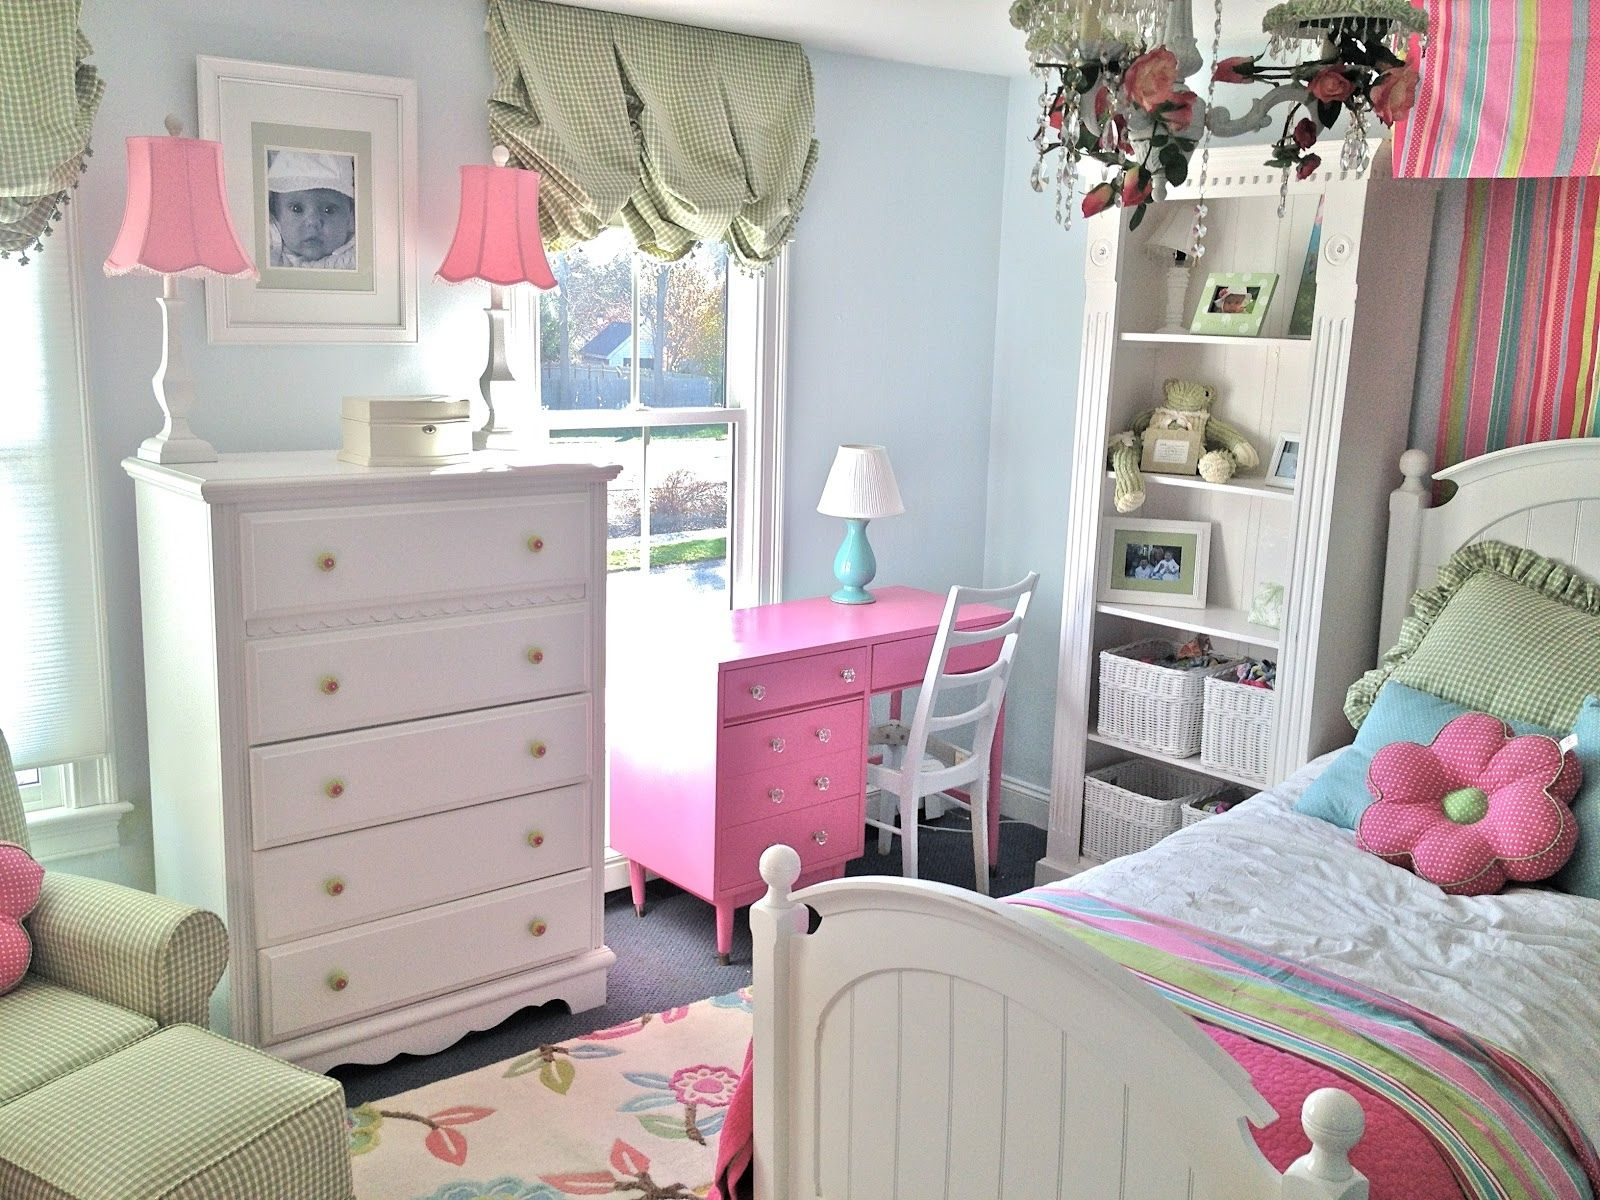 55 Pink and Blue Girls Room